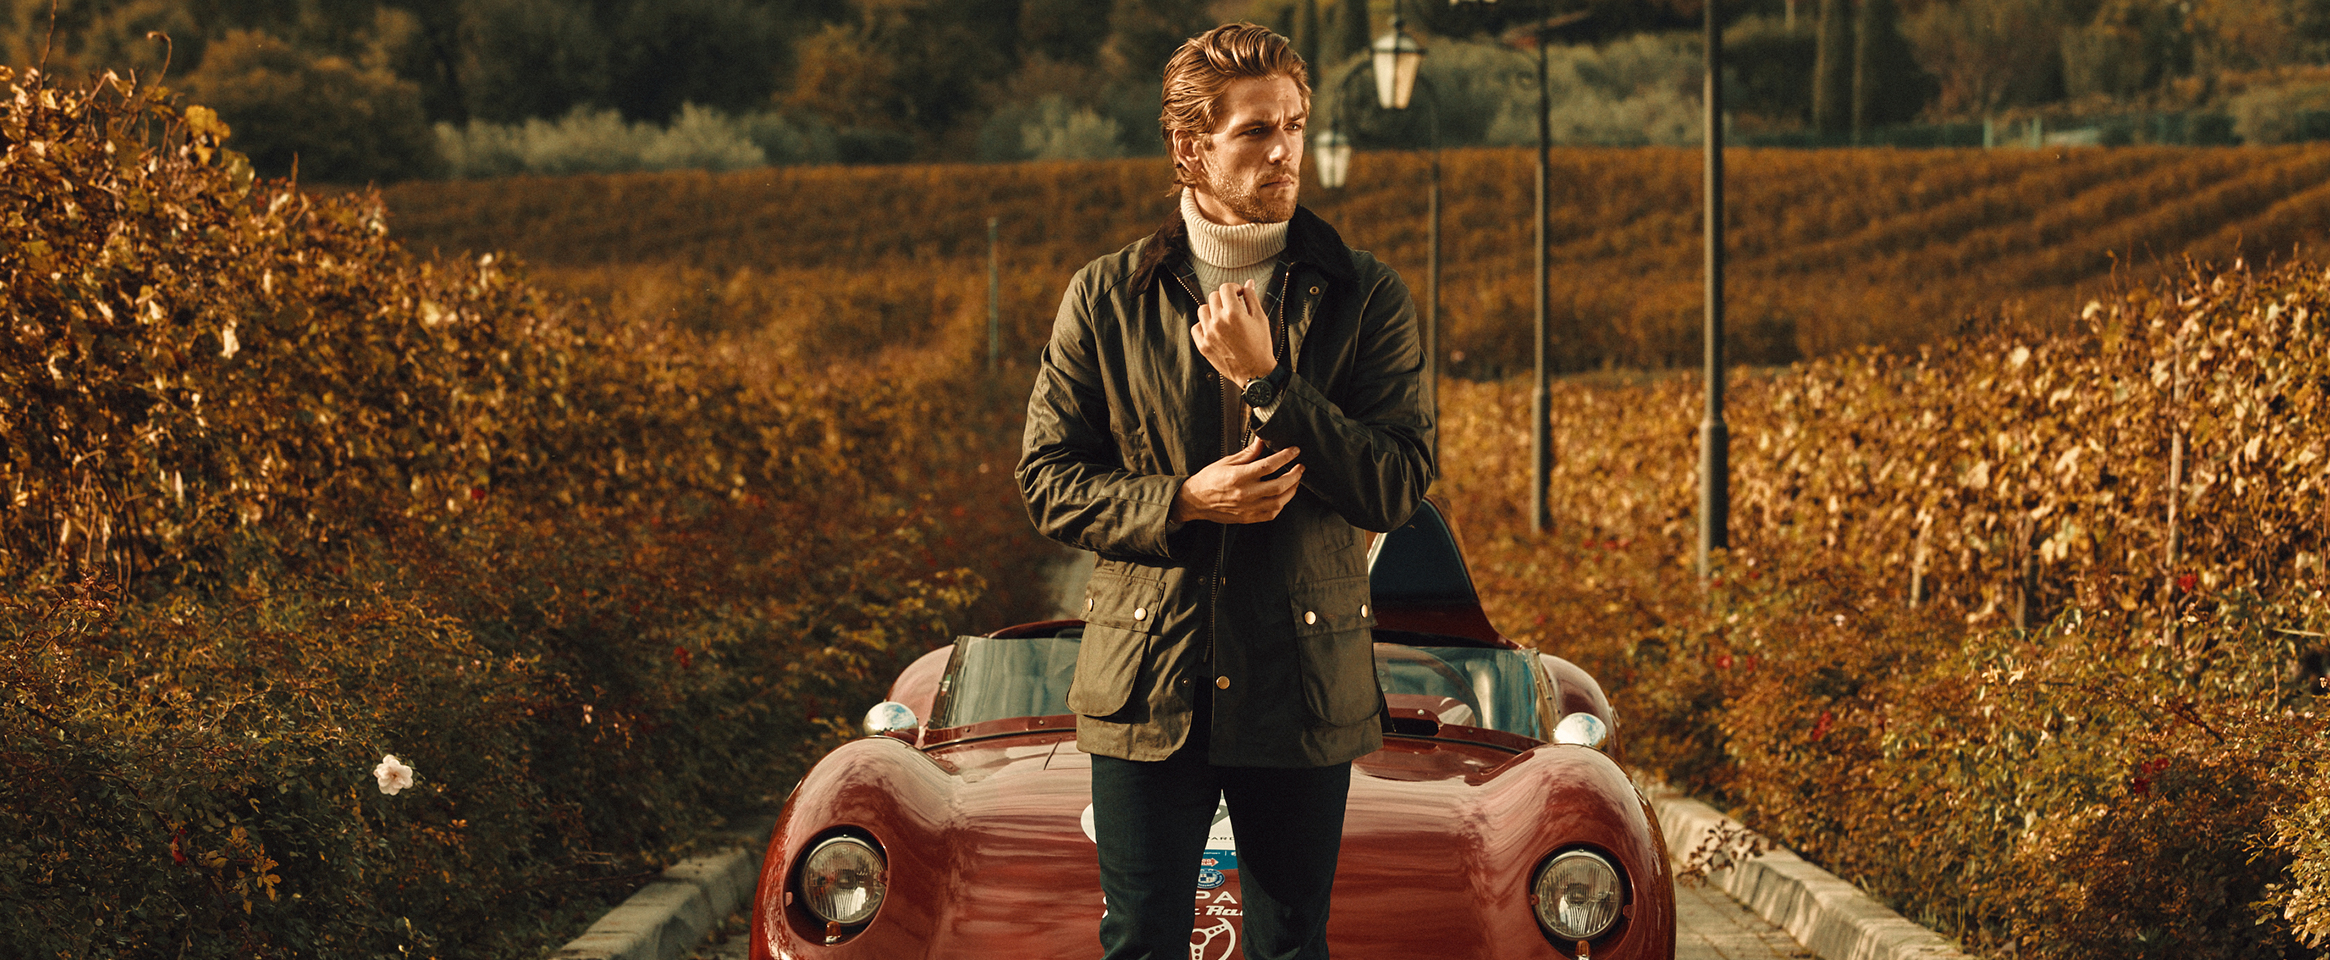 A man in the middle of a vineyard during autumn, wearing a watch from the Mille Miglia Collection